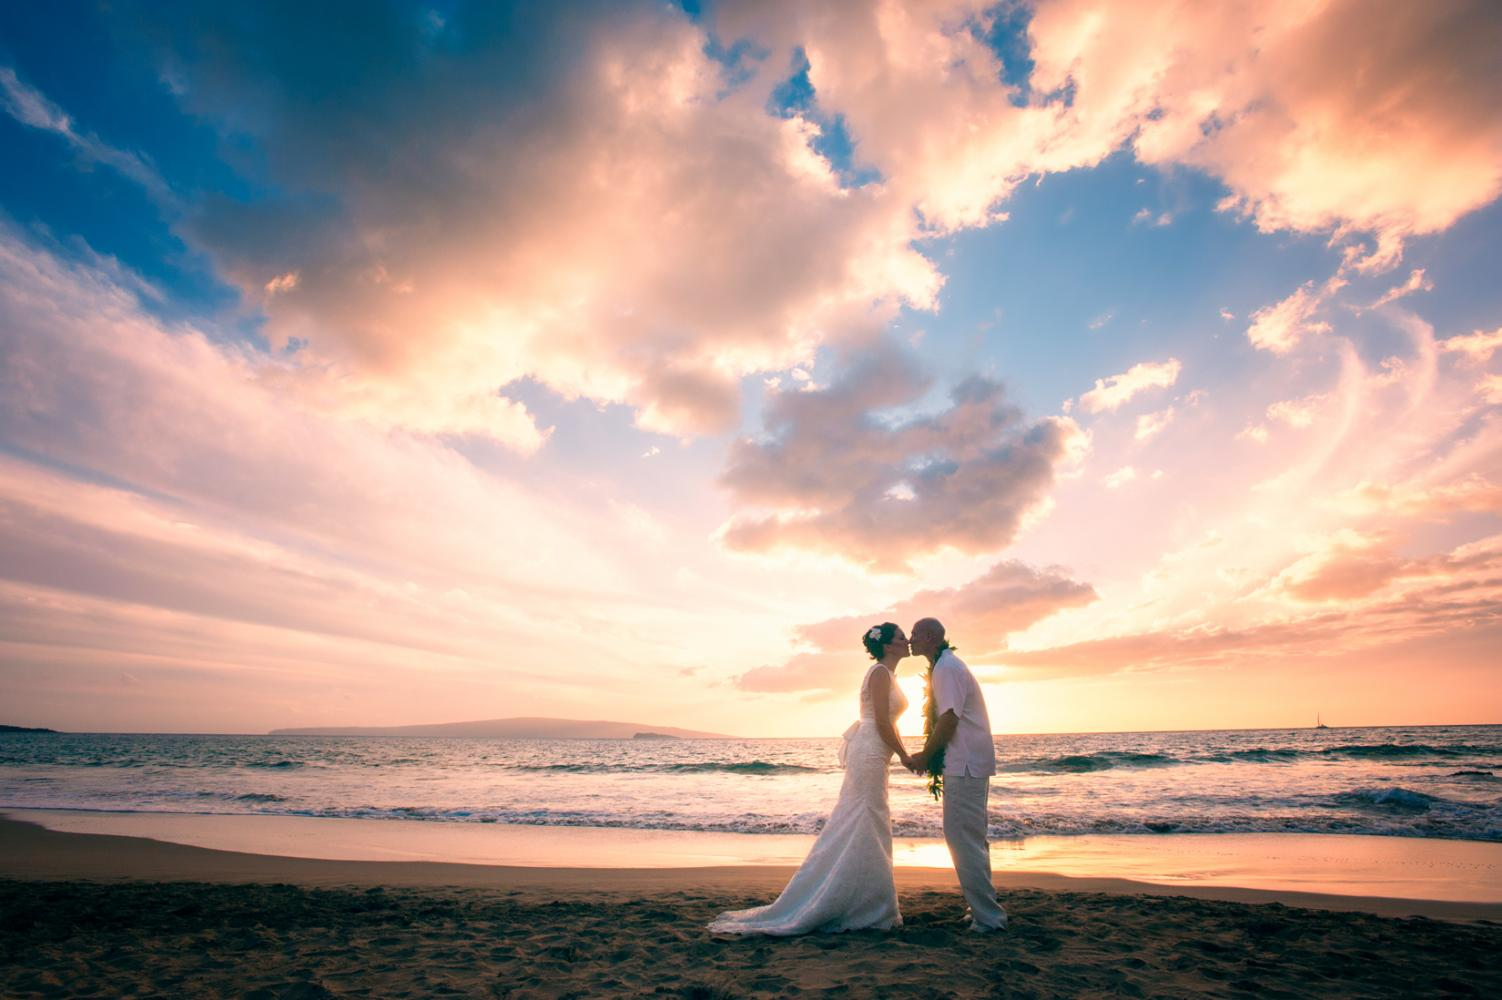 Maui Hawaii Beach Wedding Photographer, マウイカメラマン、写真家、Maui Photography, Poolenelena Beach